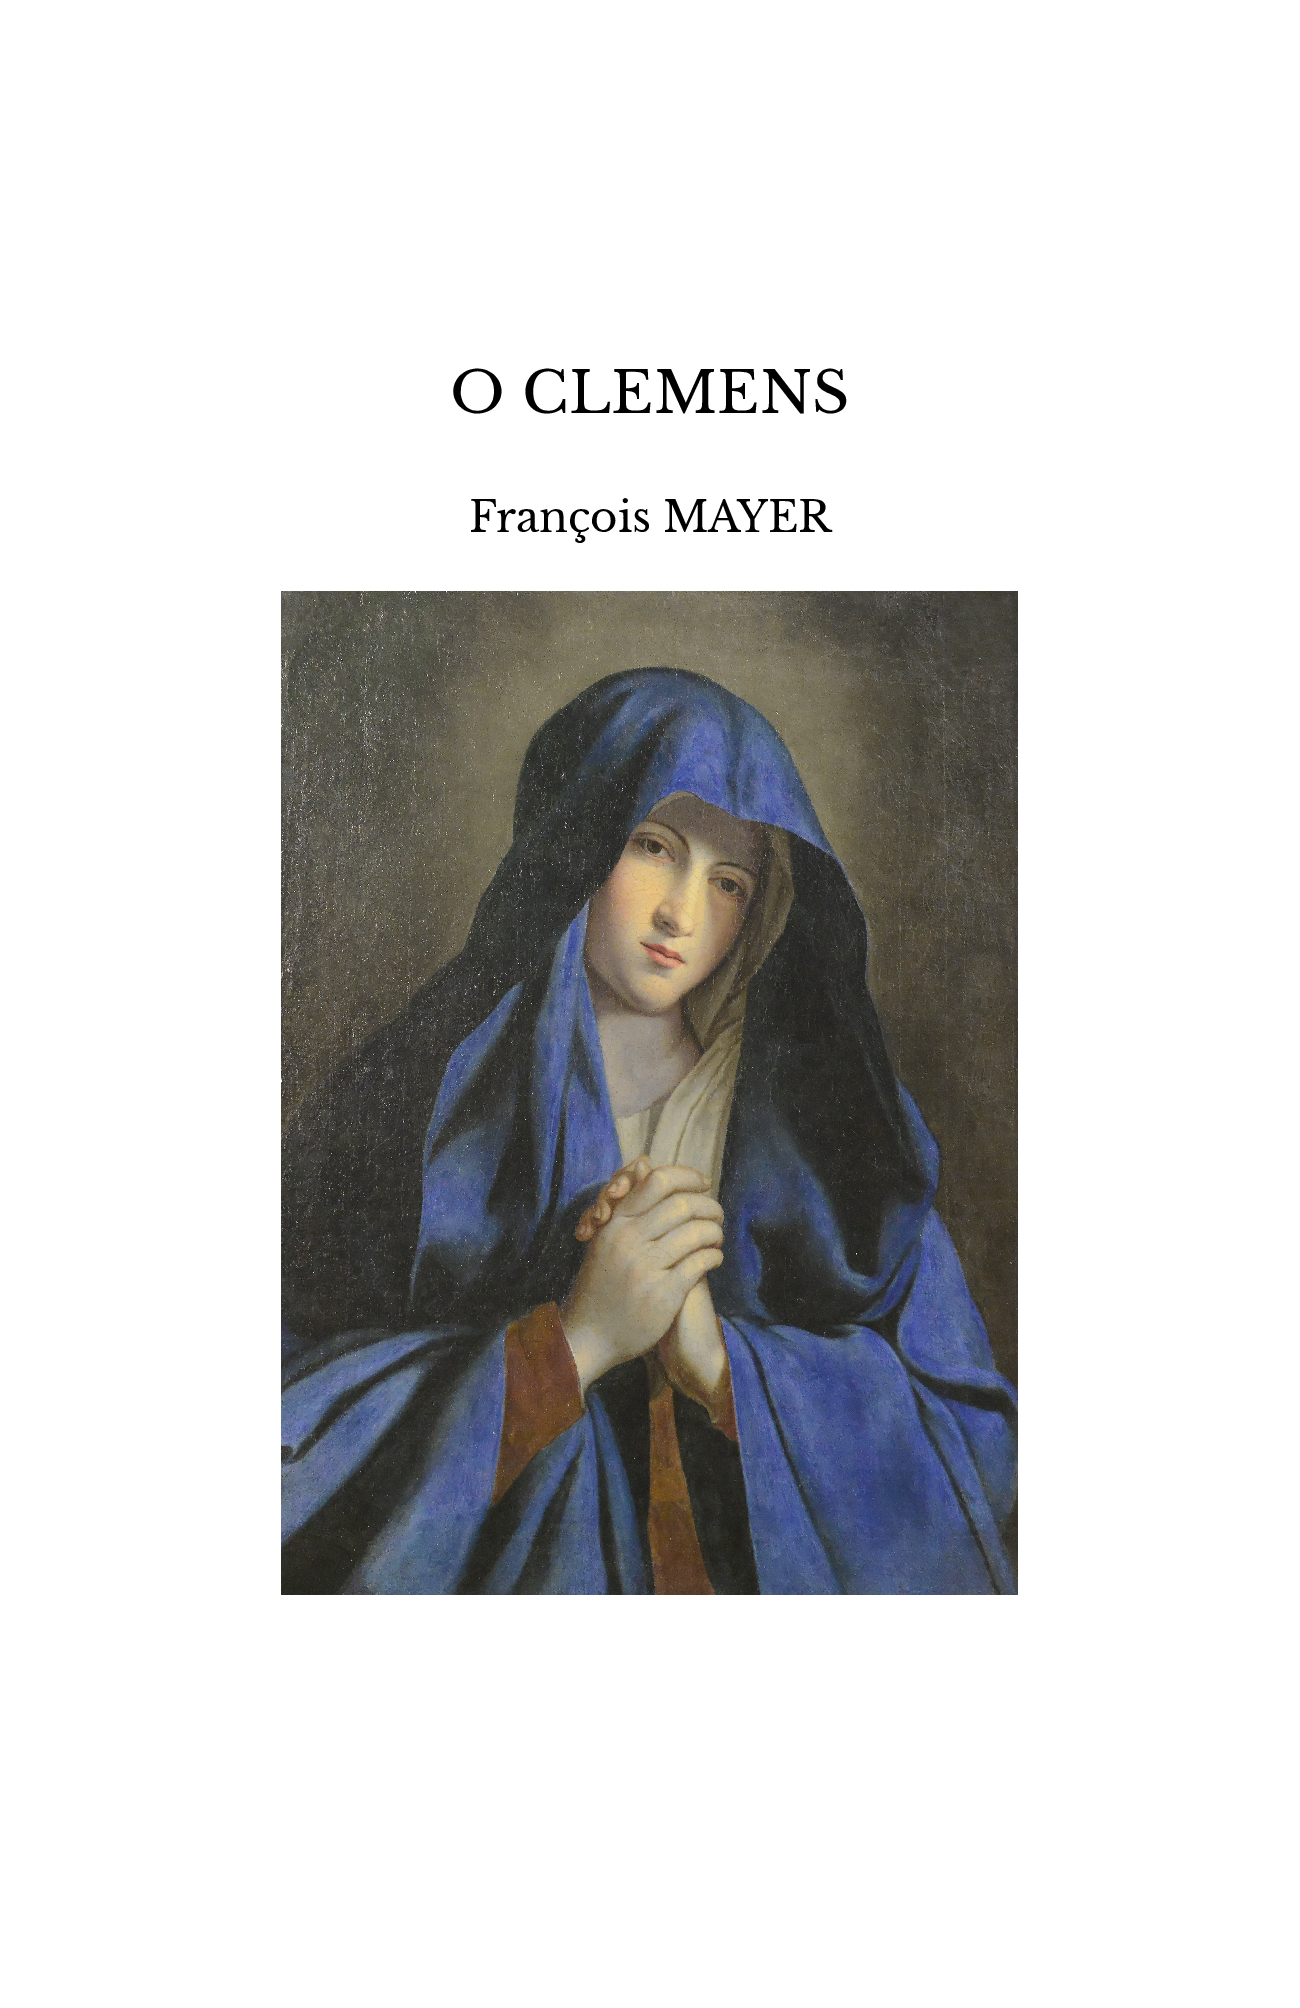 O CLEMENS